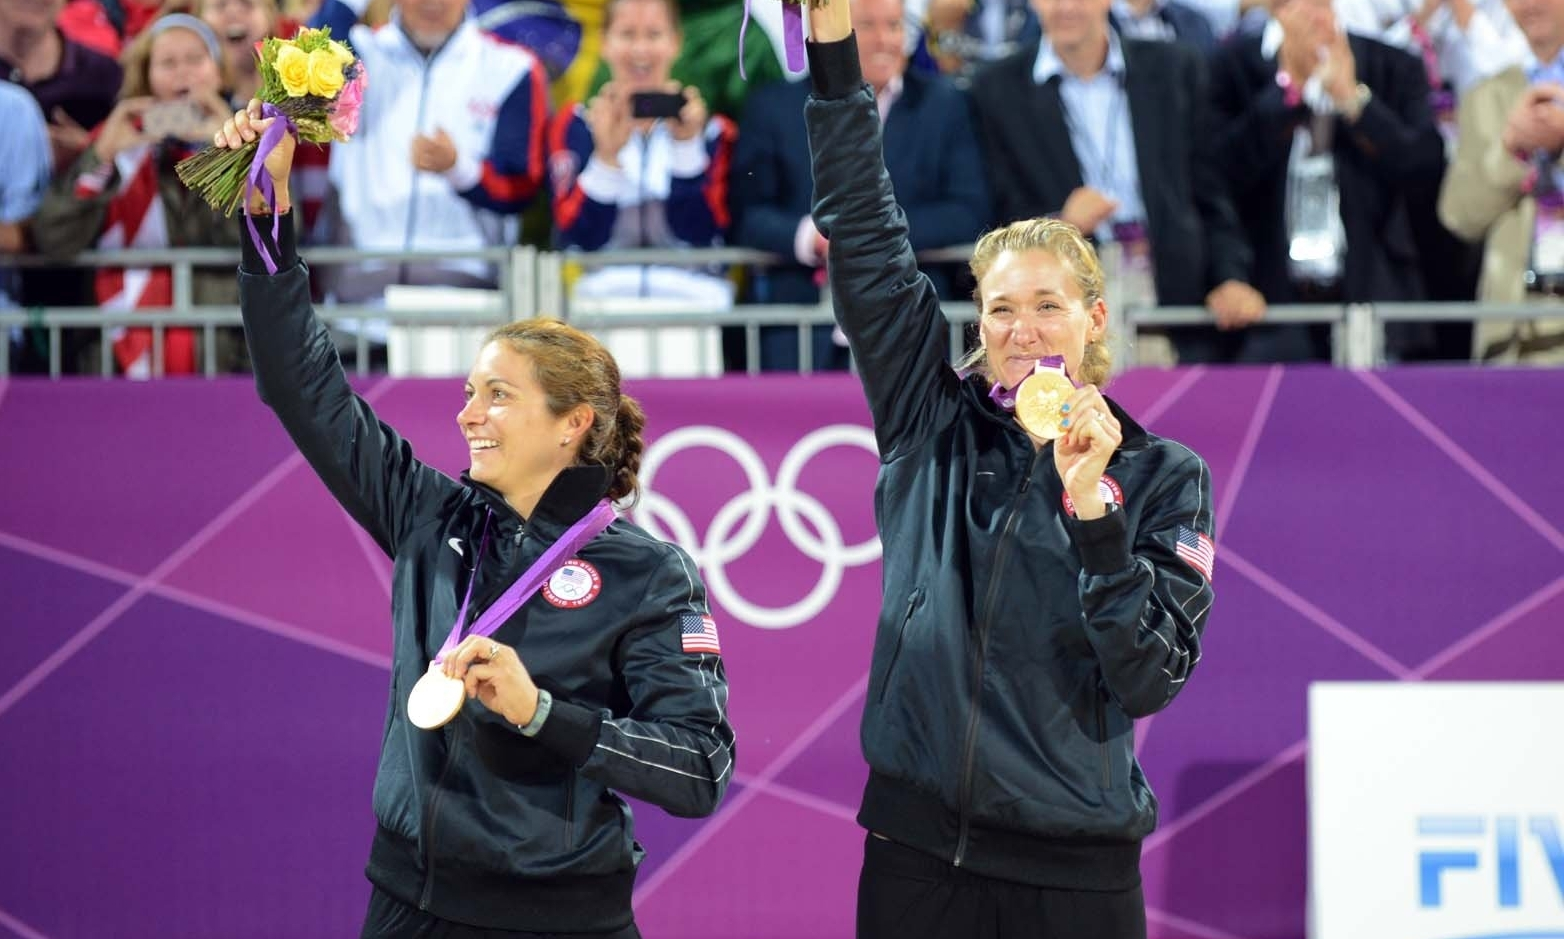 Misty (left) and Kerri celebrate their third successive Olympic gold in London in 2012. Photocredit: FIVB